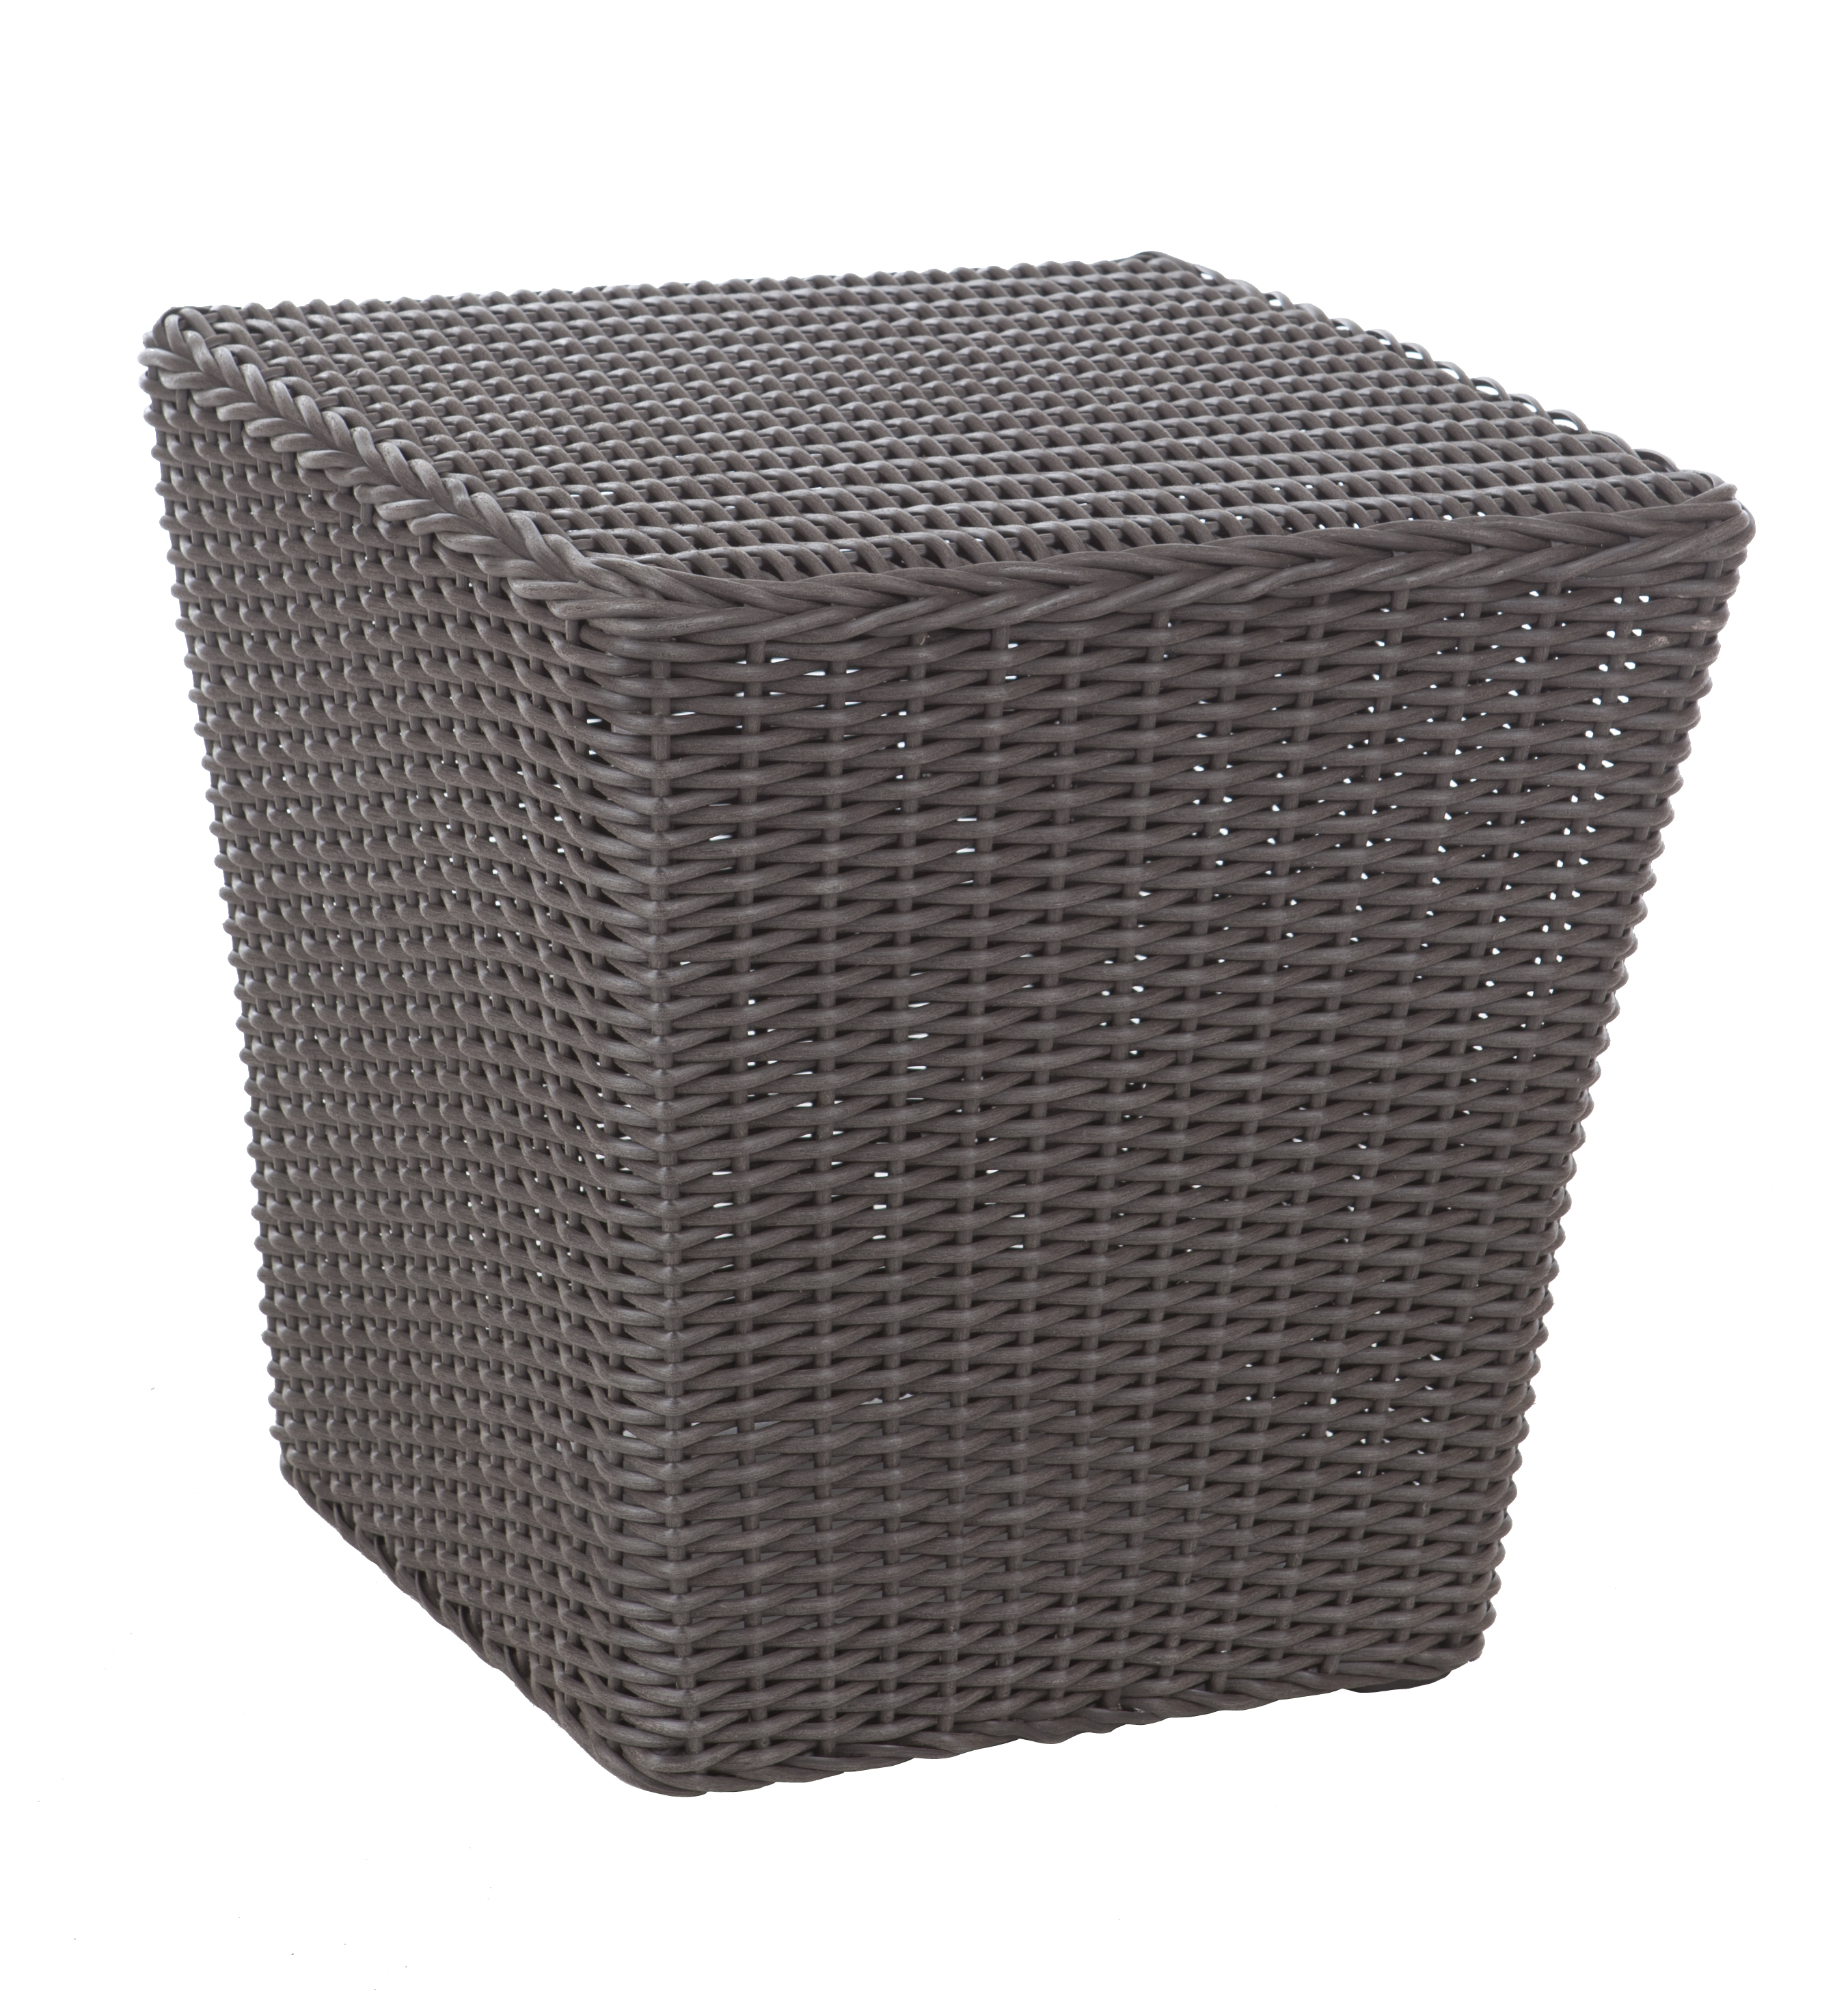 Bel Cubo Square Wicker Bistro Set Well Traveled Living